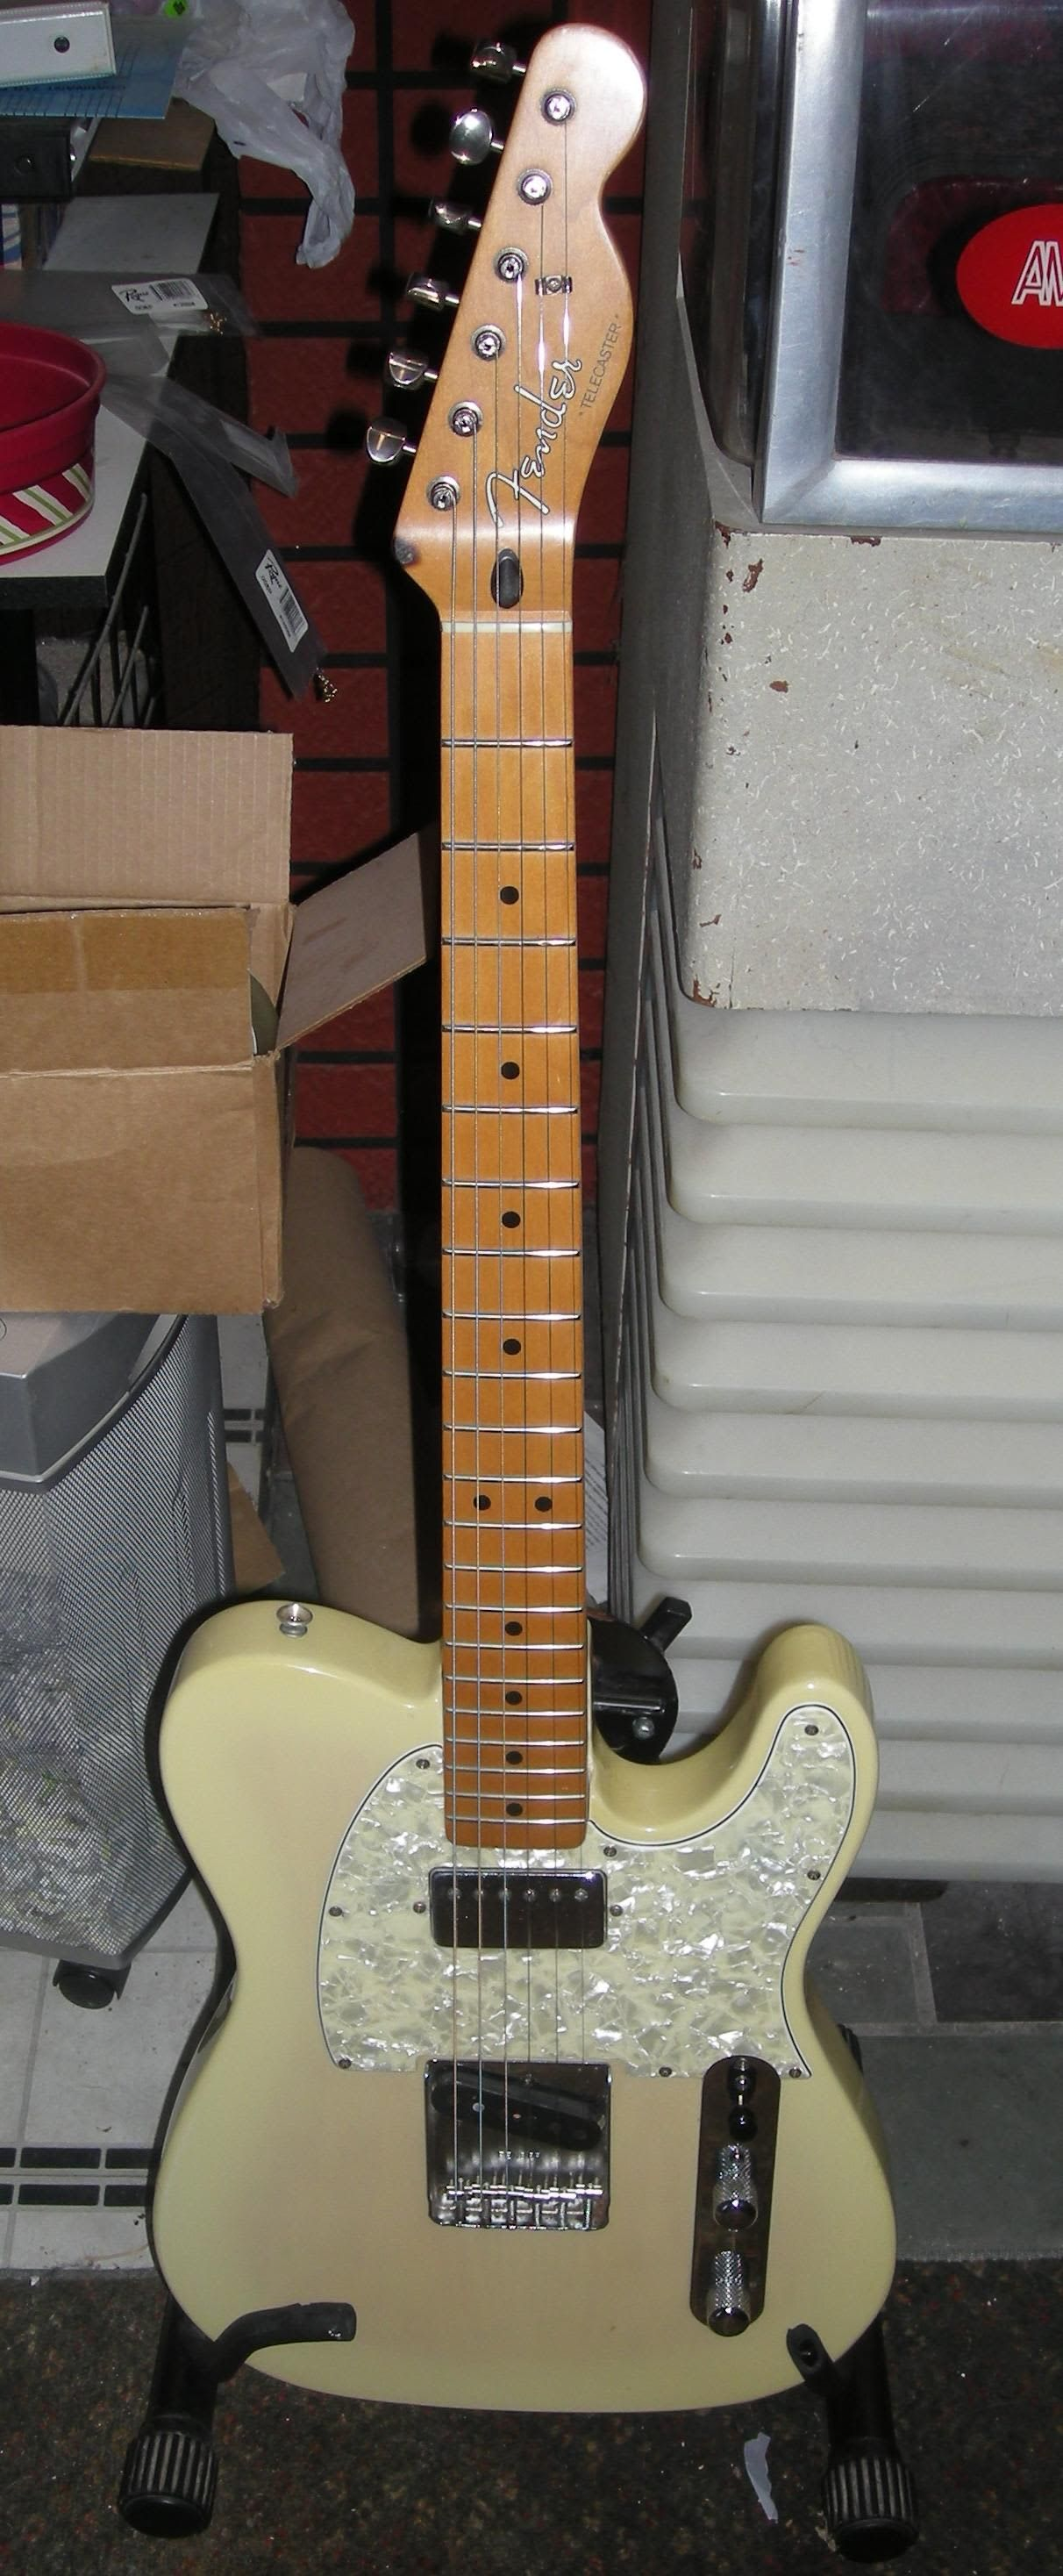 1995 fender mim telecaster special aged white blonde maple neck in